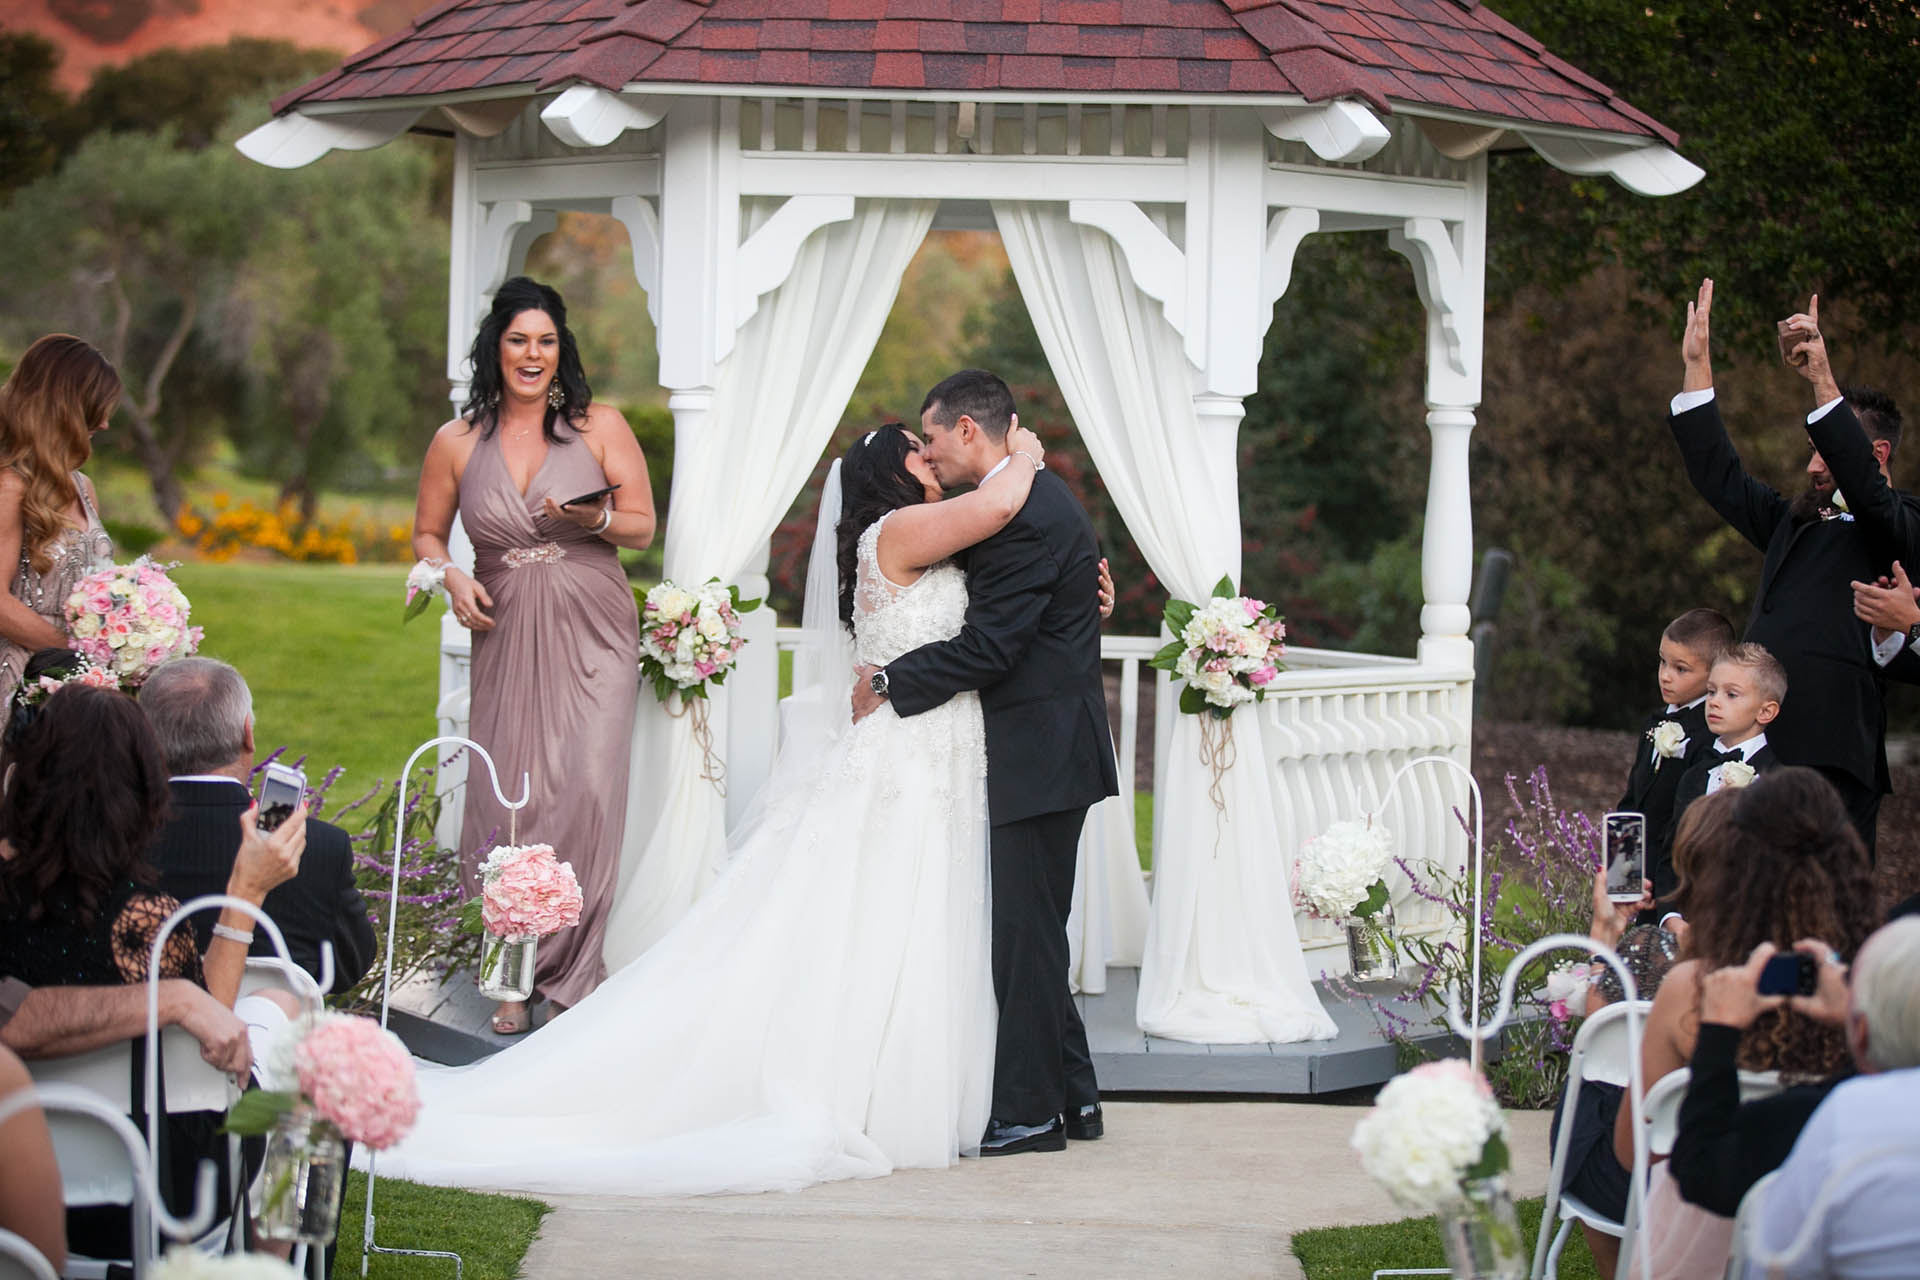 Garden ceremony with traditional gazebo